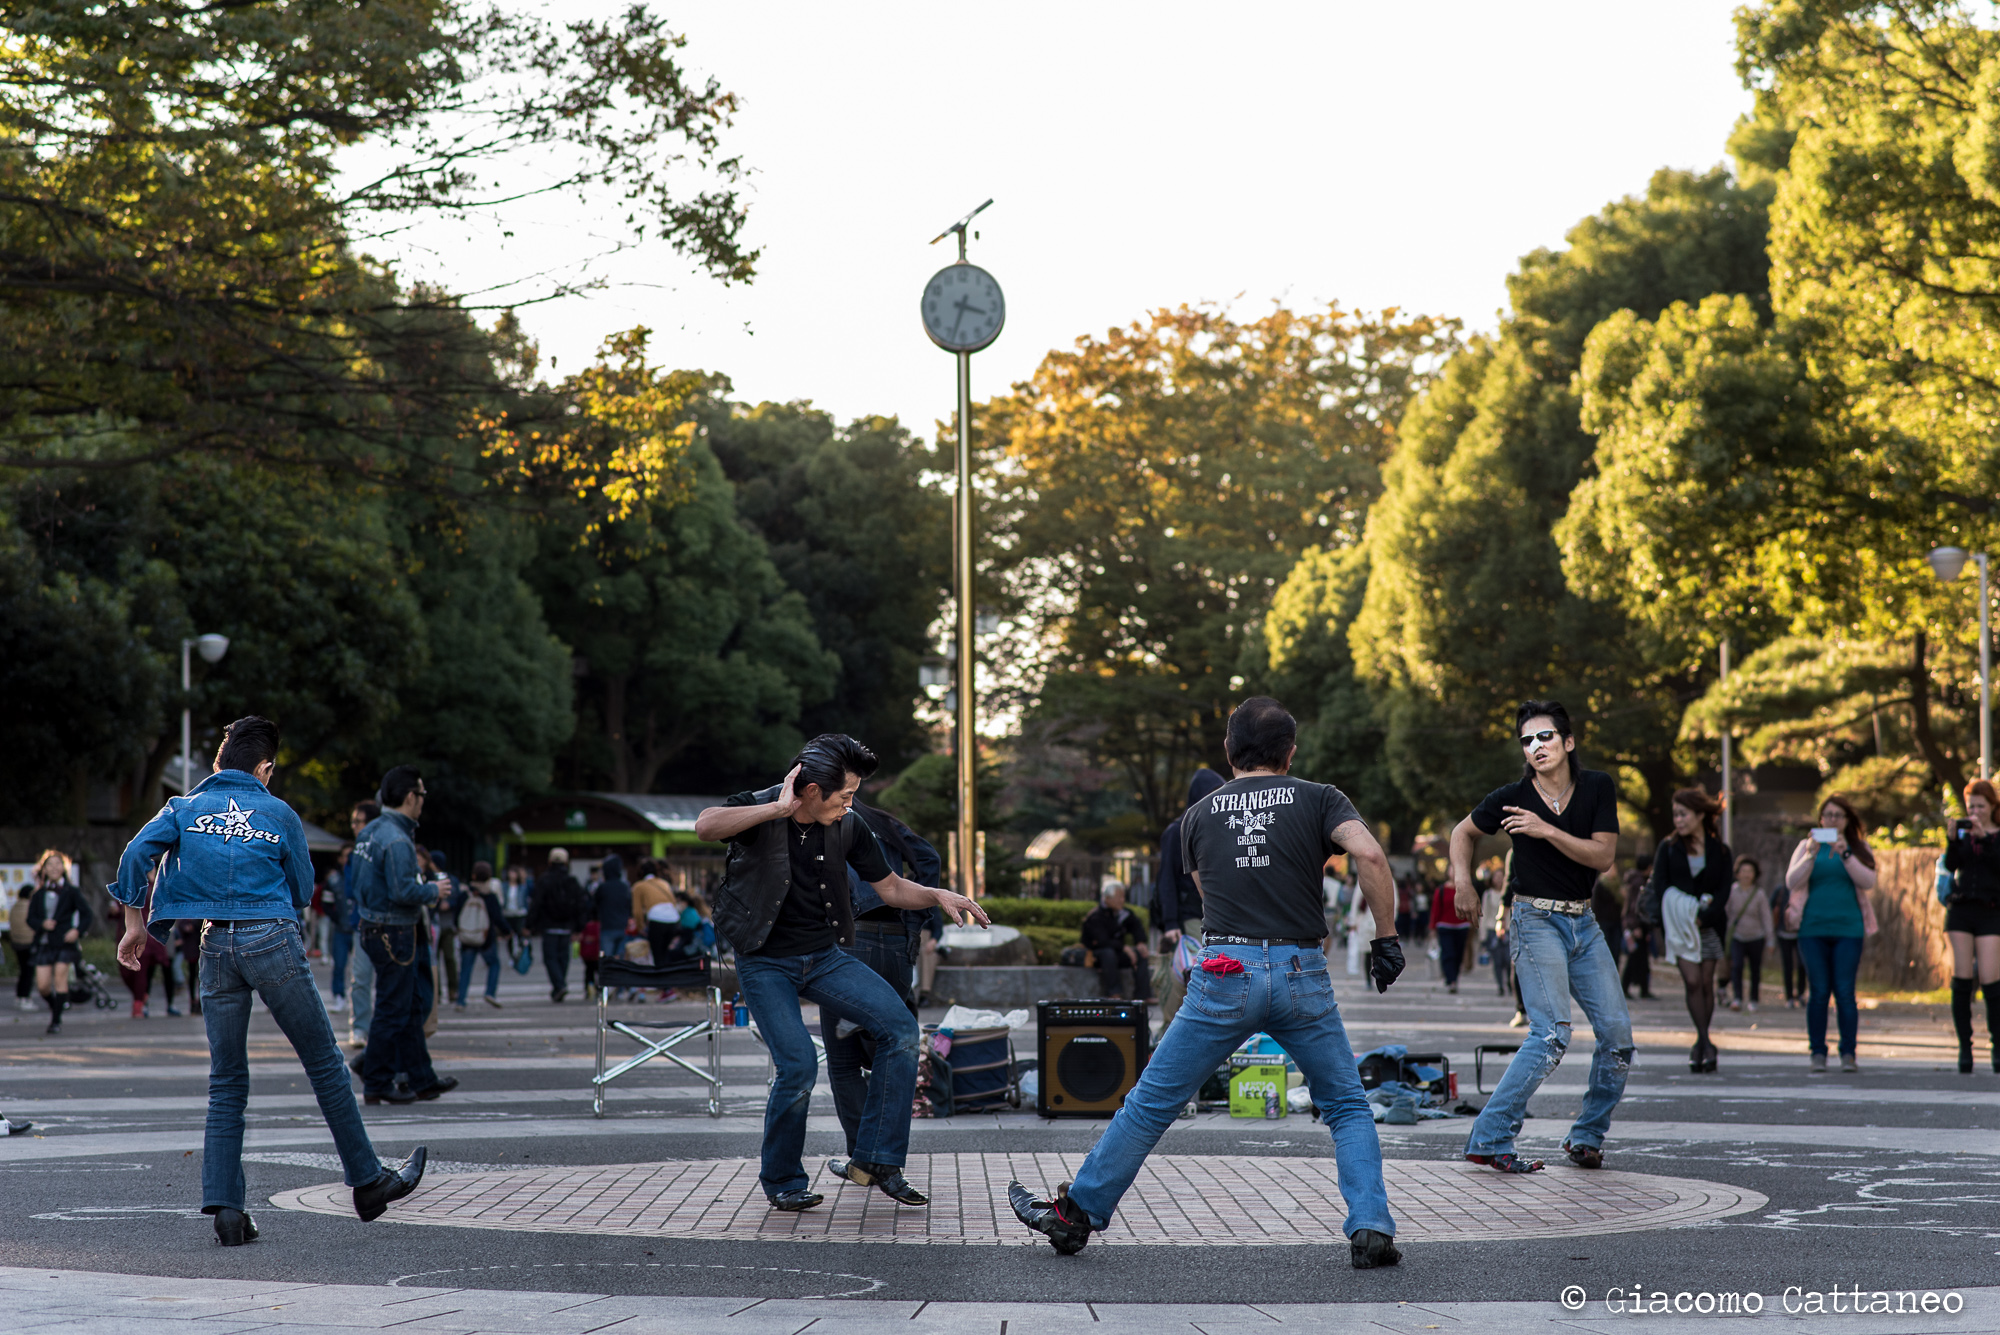 ISO 320, 85mm, f/3.5, 1/400 sec - Elvis gang at Yoyogi park, Tokyo. Still feeling the vibe...